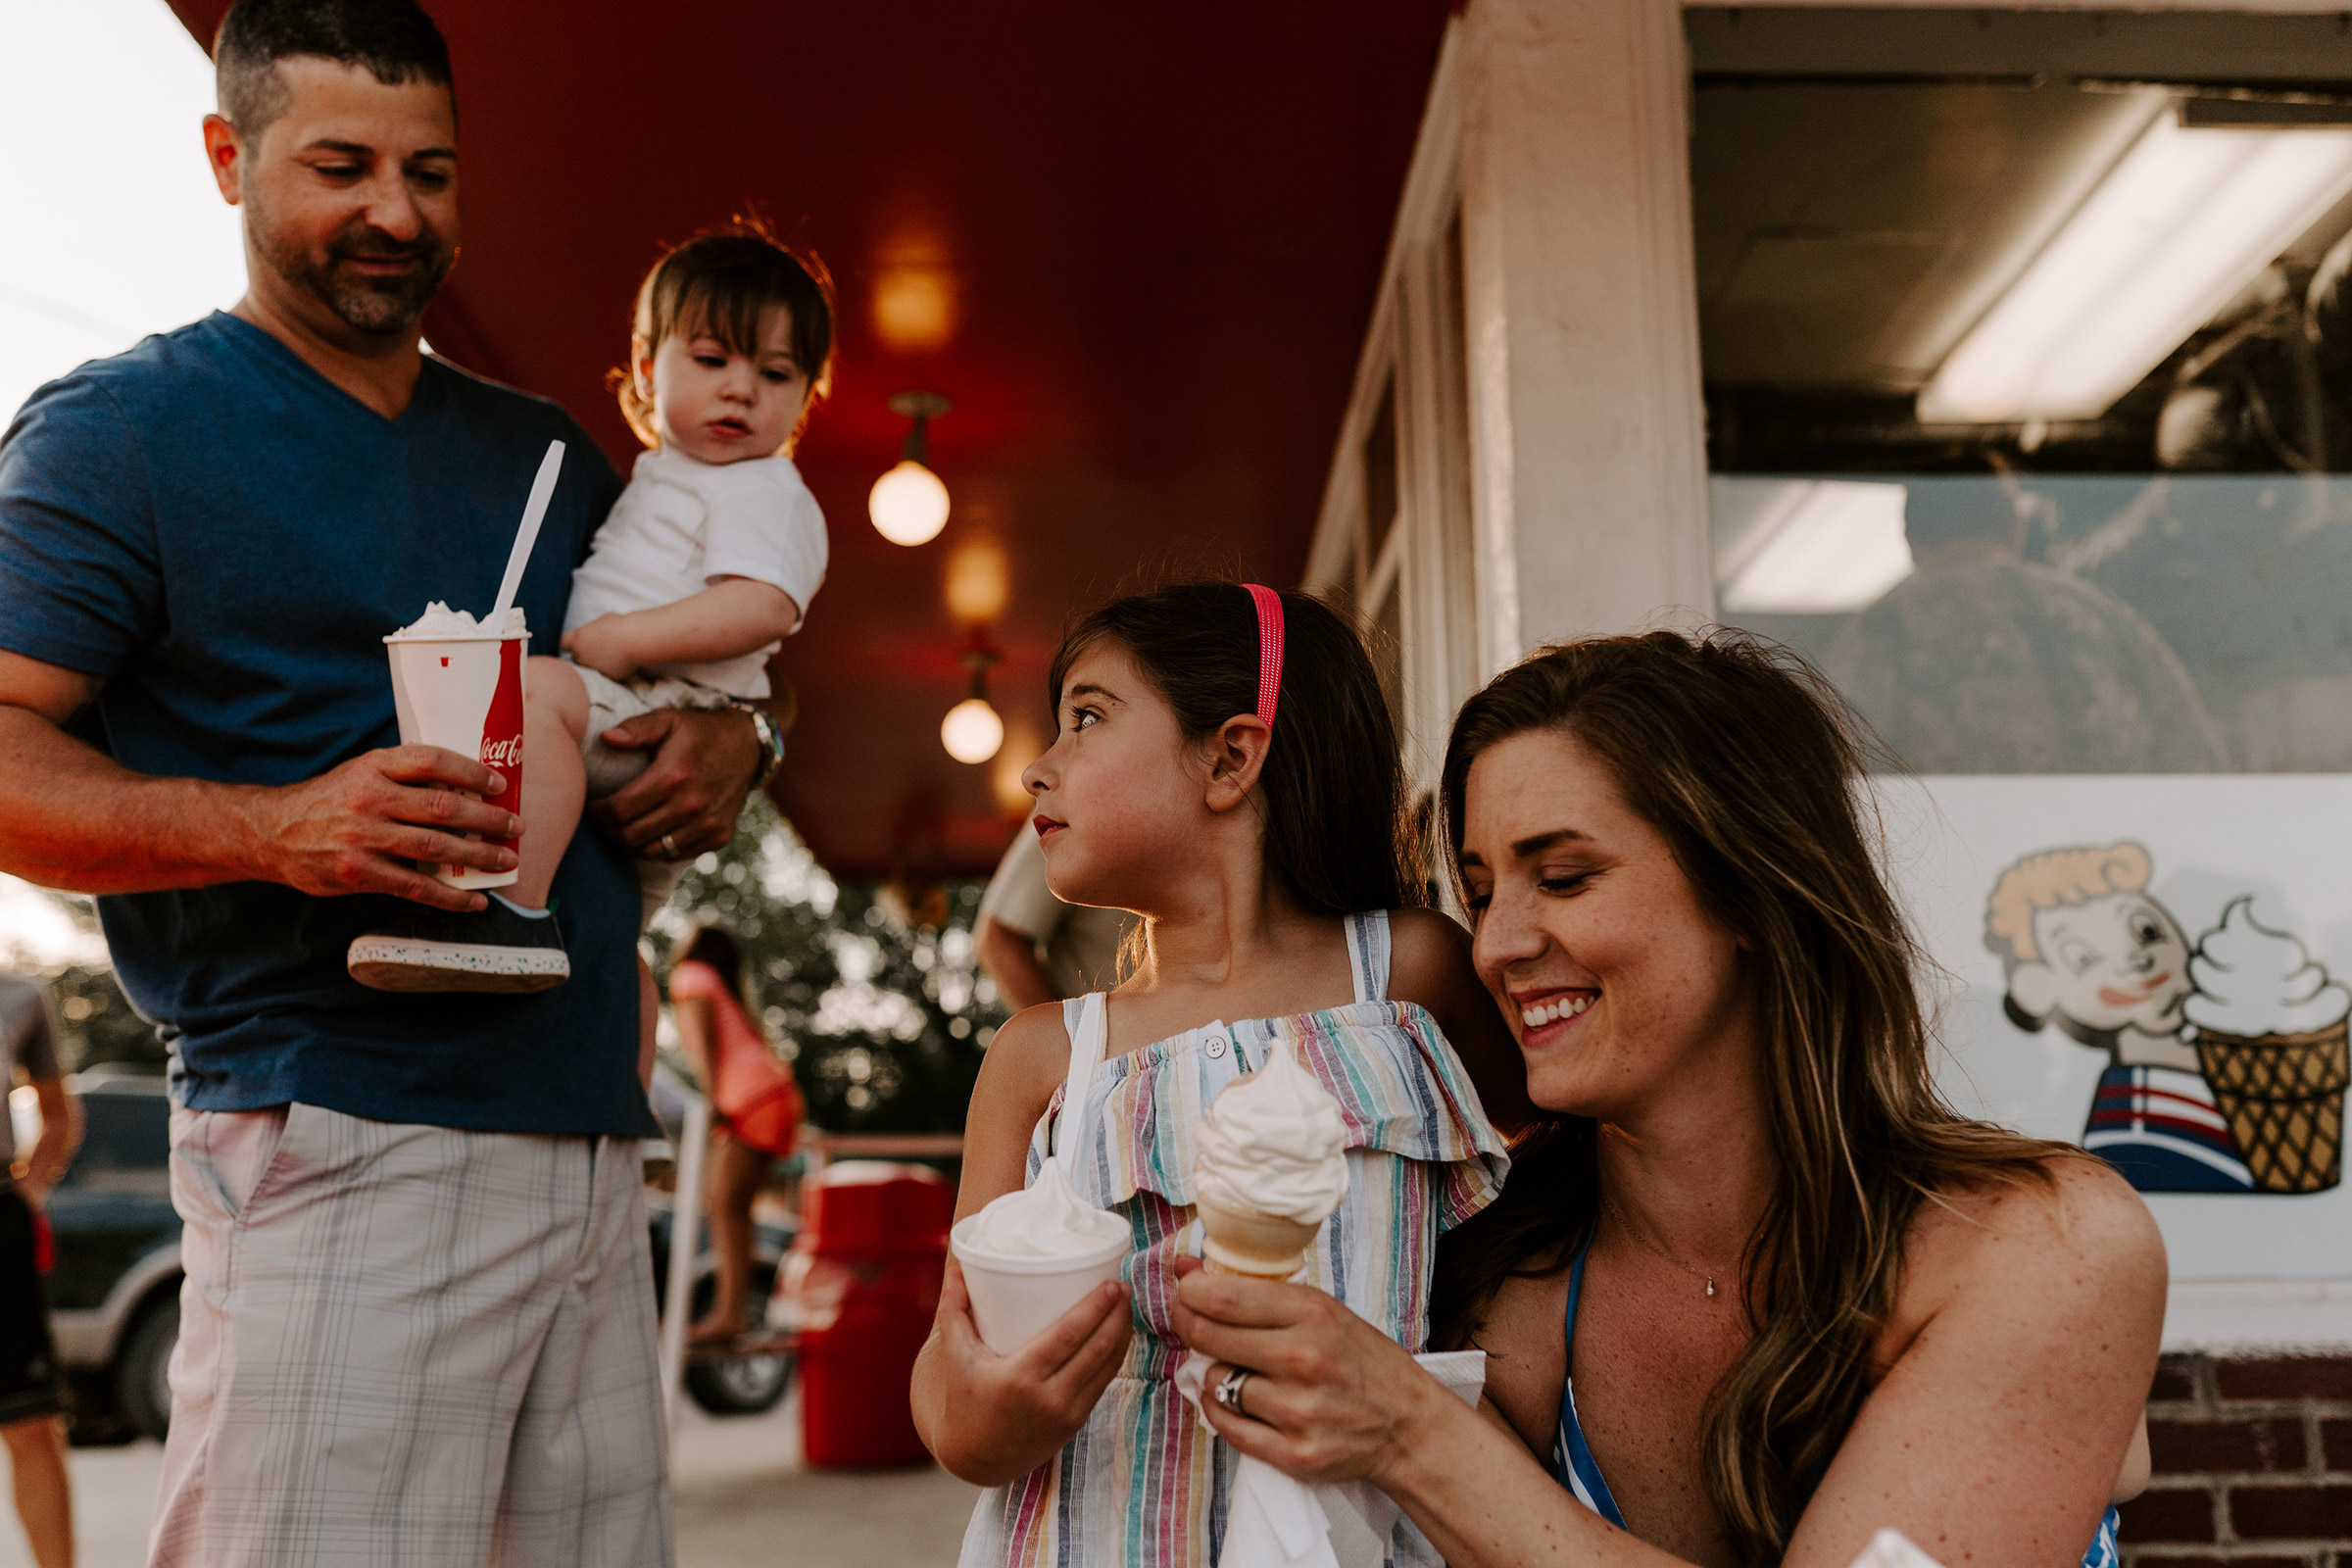 natale-family-ordering-ice-cream-at-frostees-winterset-iowa-raelyn-ramey-photography-188.jpg